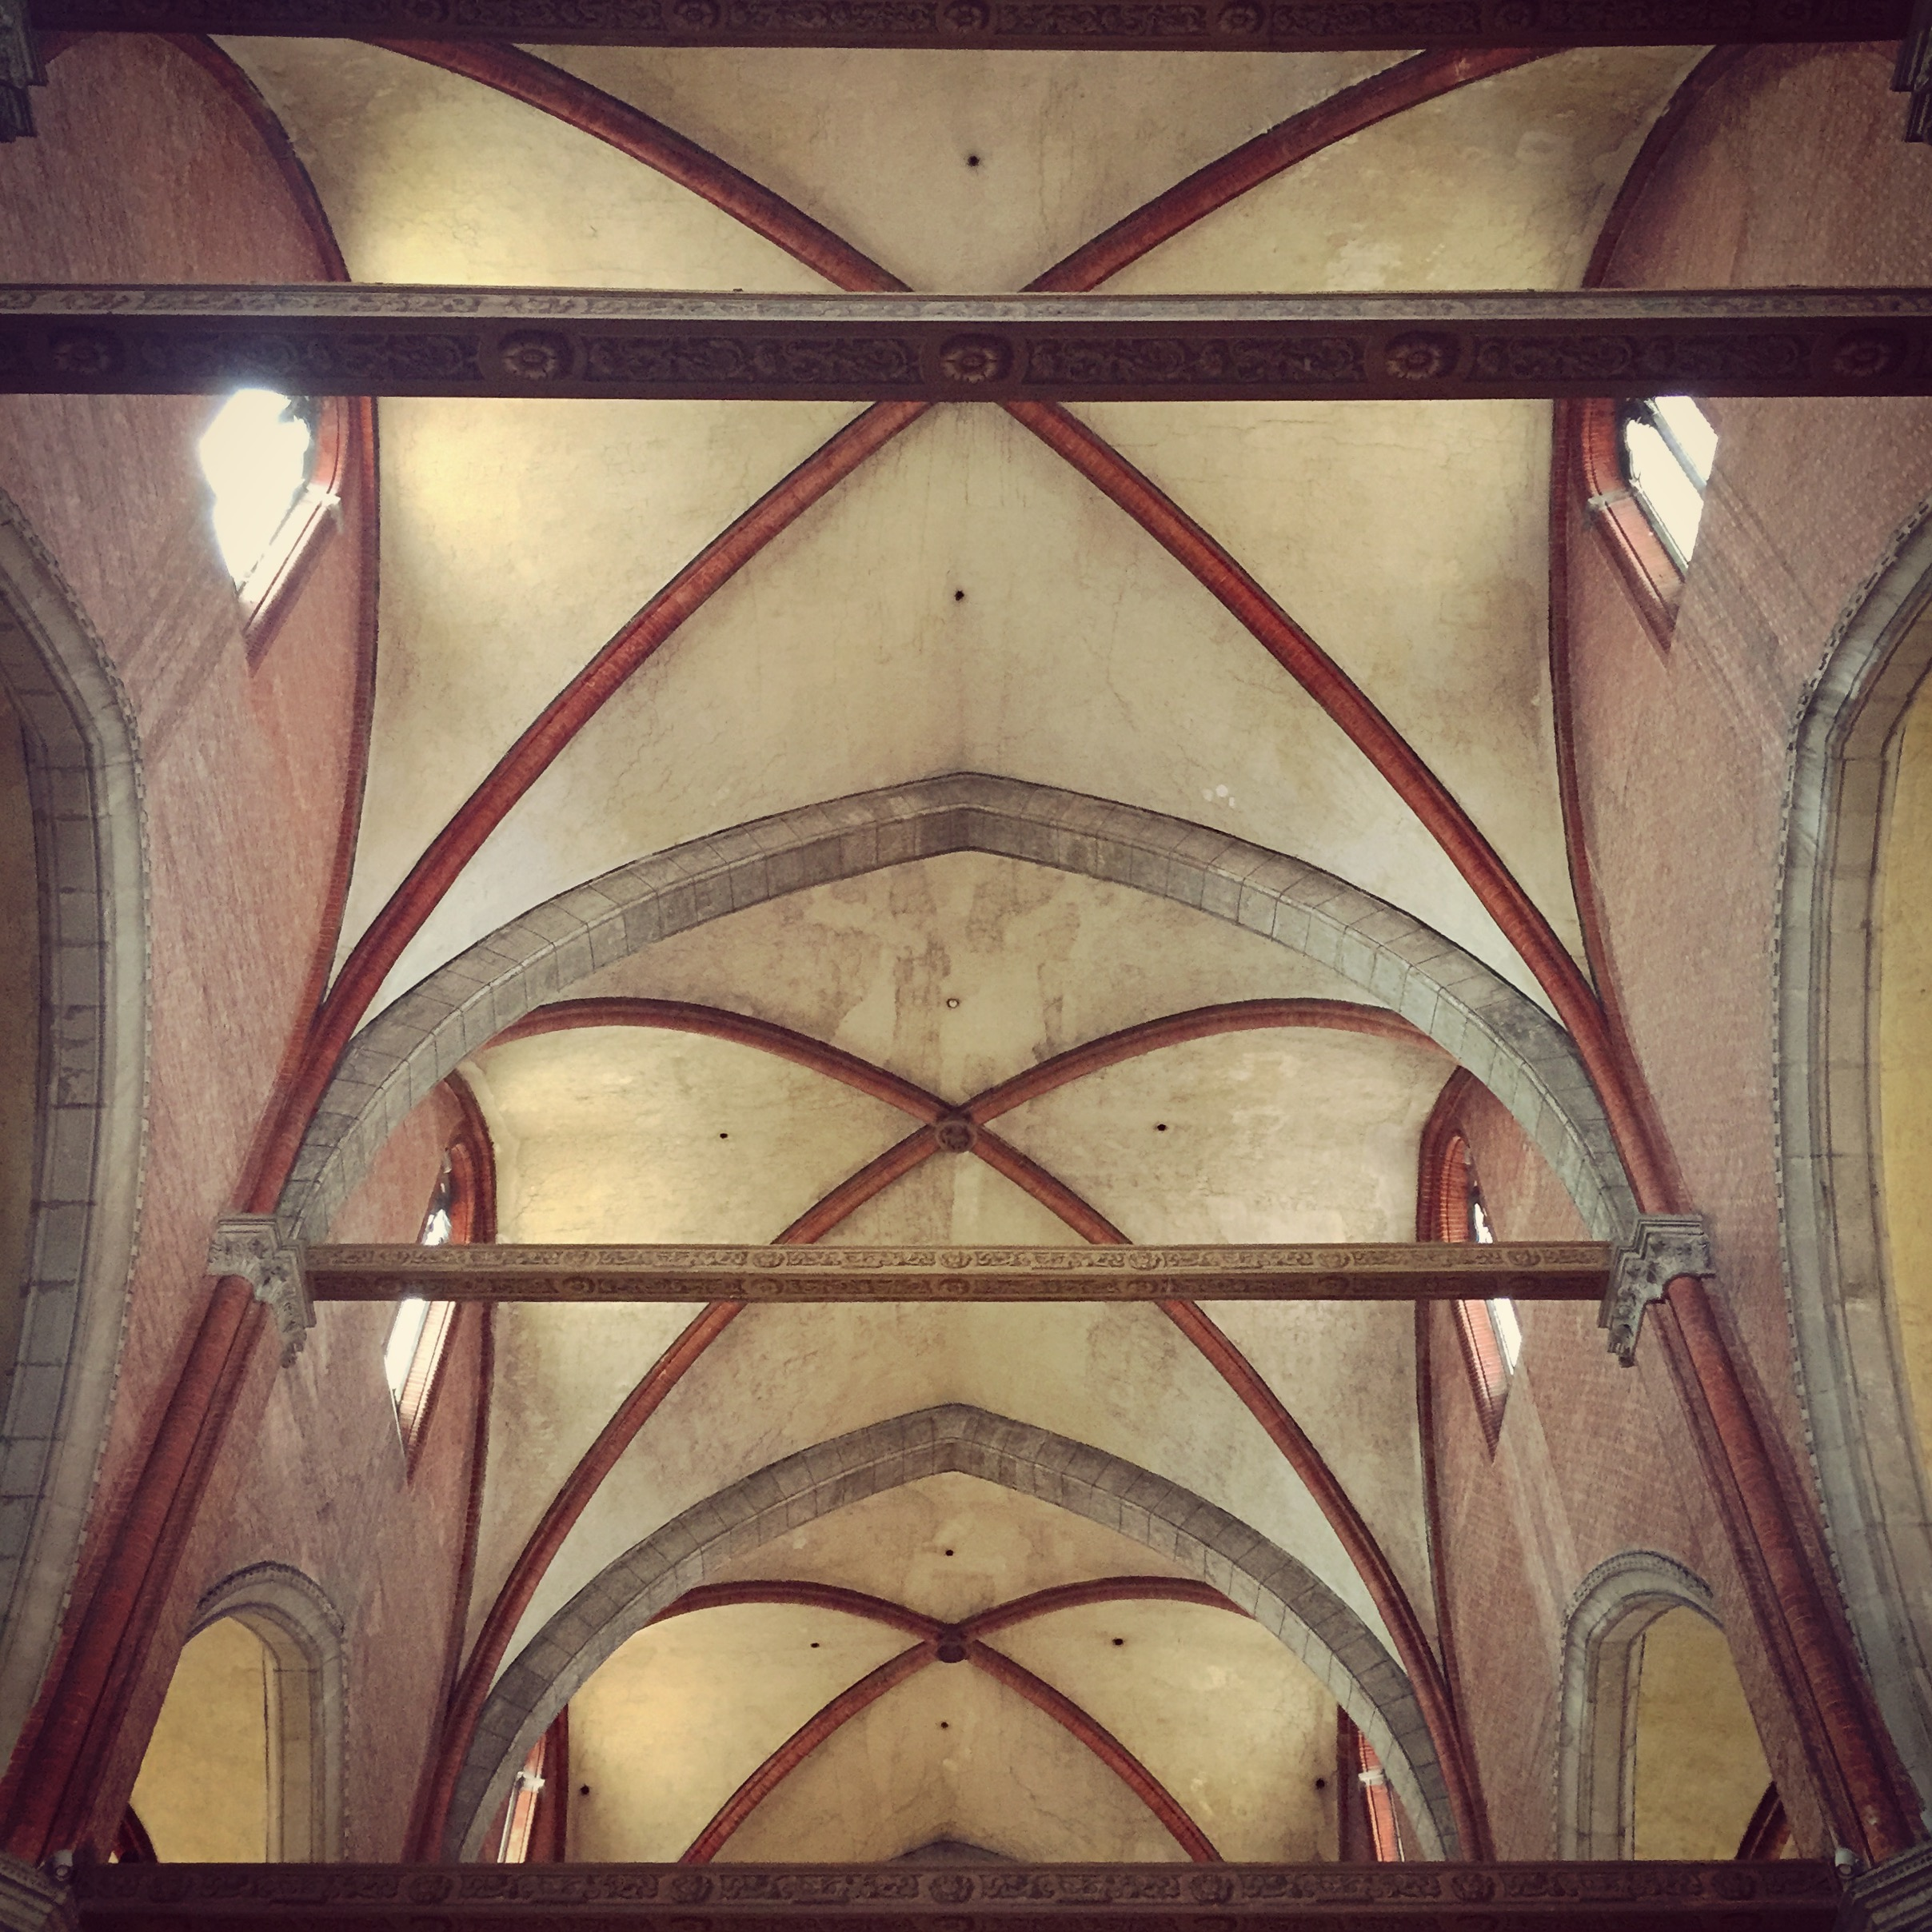 View of Basilica dei Frari's vaulted ceiling.